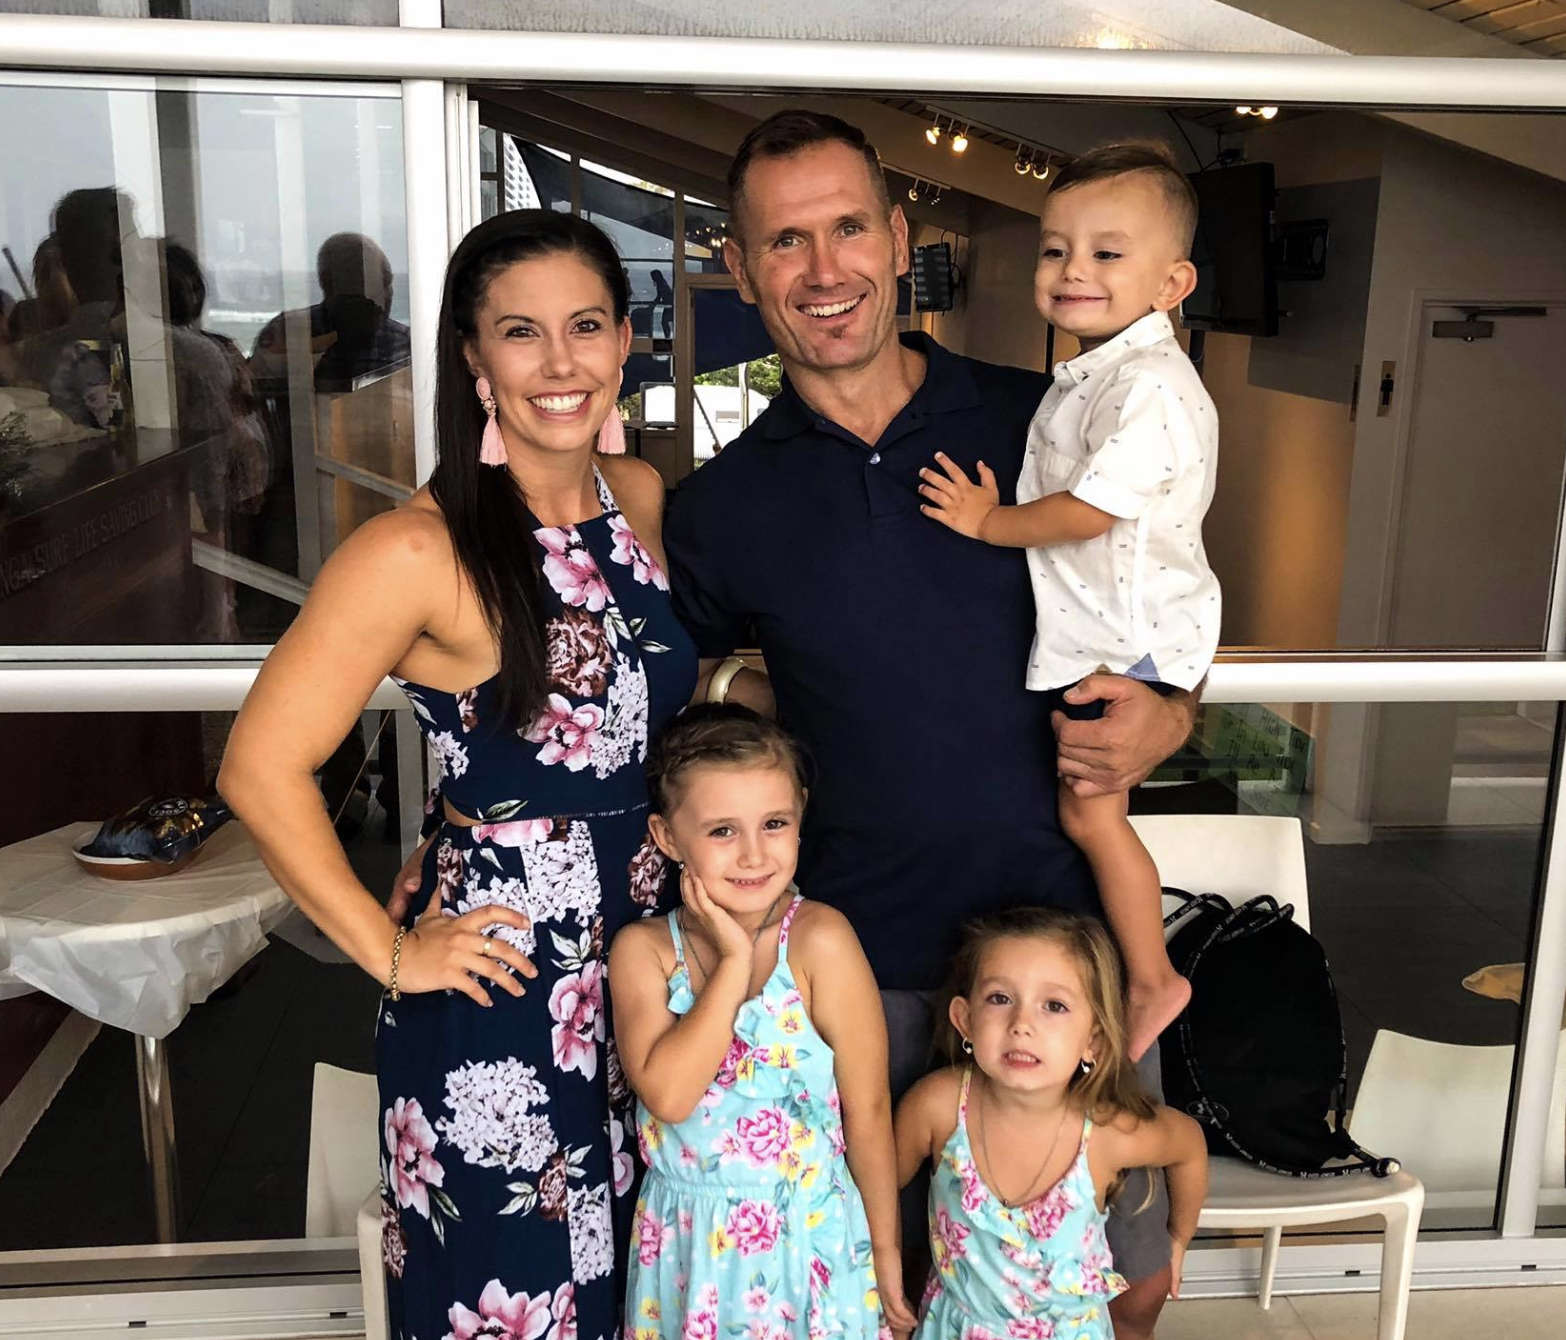 Hannah Baxter with her husband Rowan and their three young children. Source: Facebook